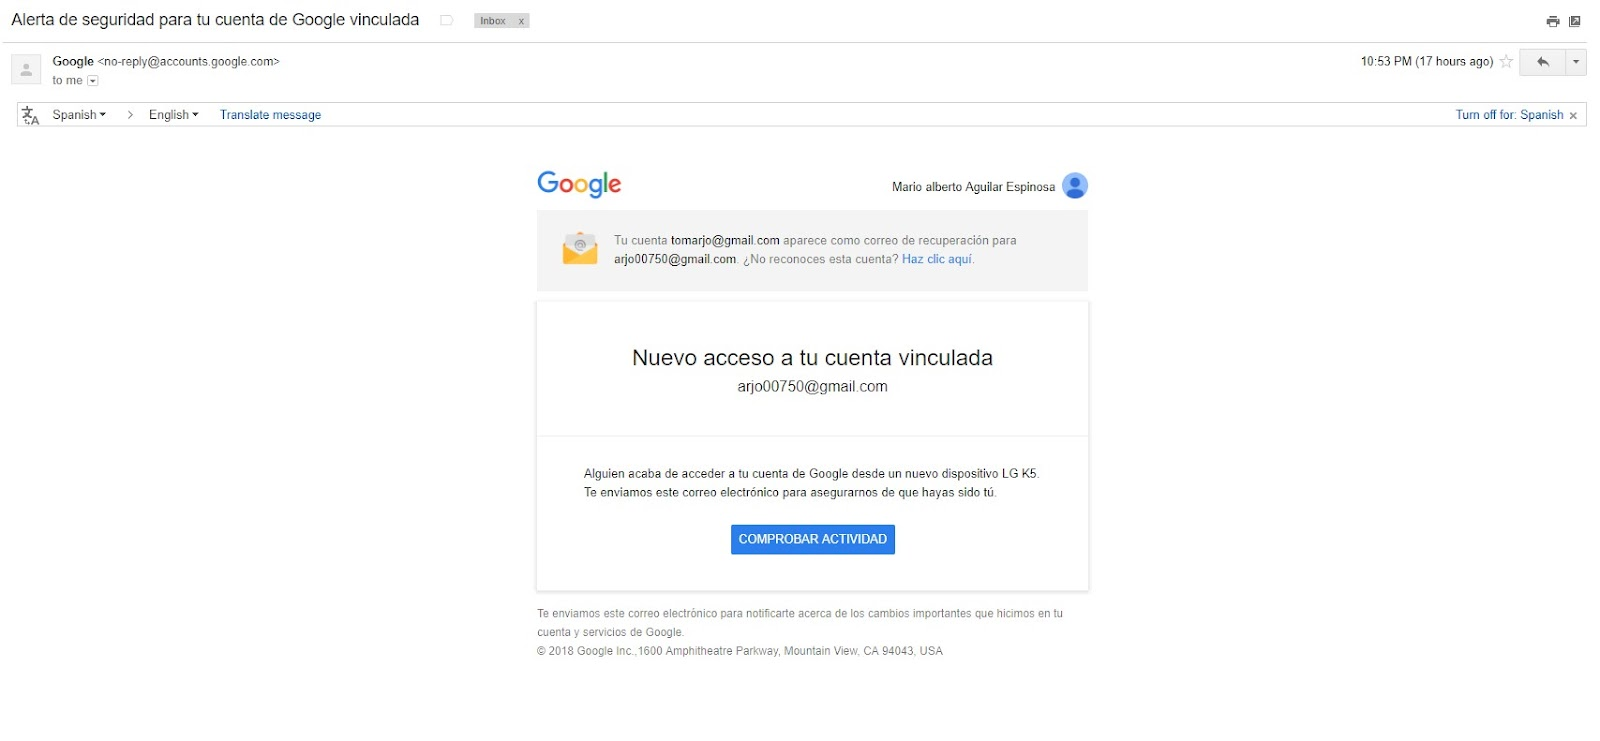 Possible fake/scam Google Security Alert - Gmail Help